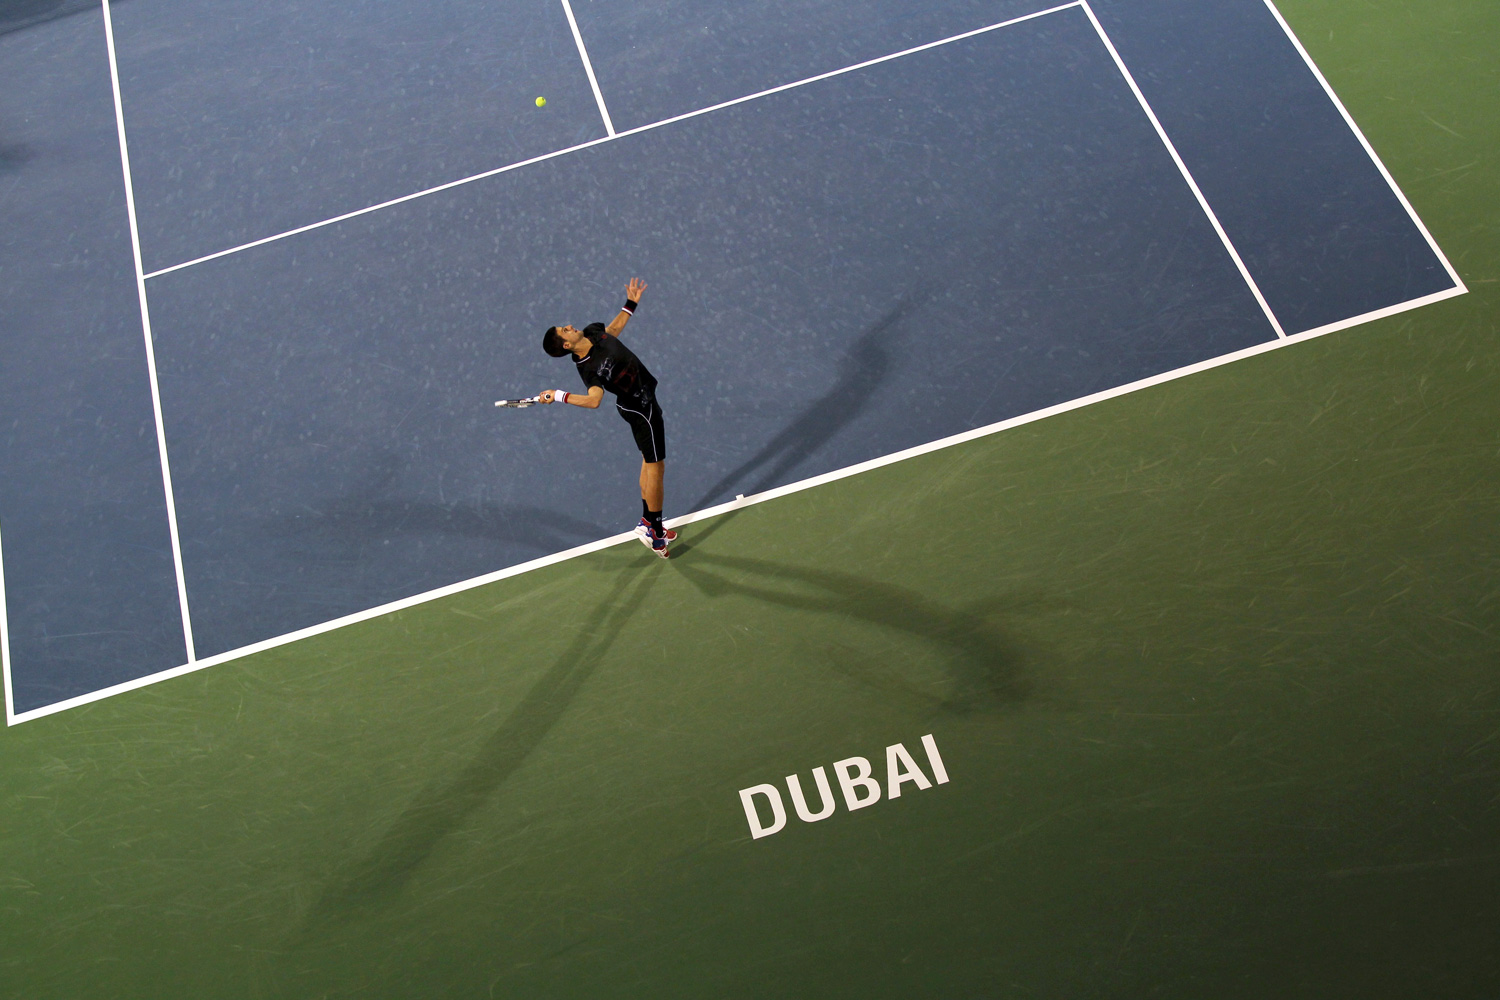 Feb. 27, 2012. World number-one tennis player Novak Djokovic of Serbia serves to Cedrik-Marcel Stebe of Germany during their ATP Dubai Open tennis match in the Gulf Emirate.